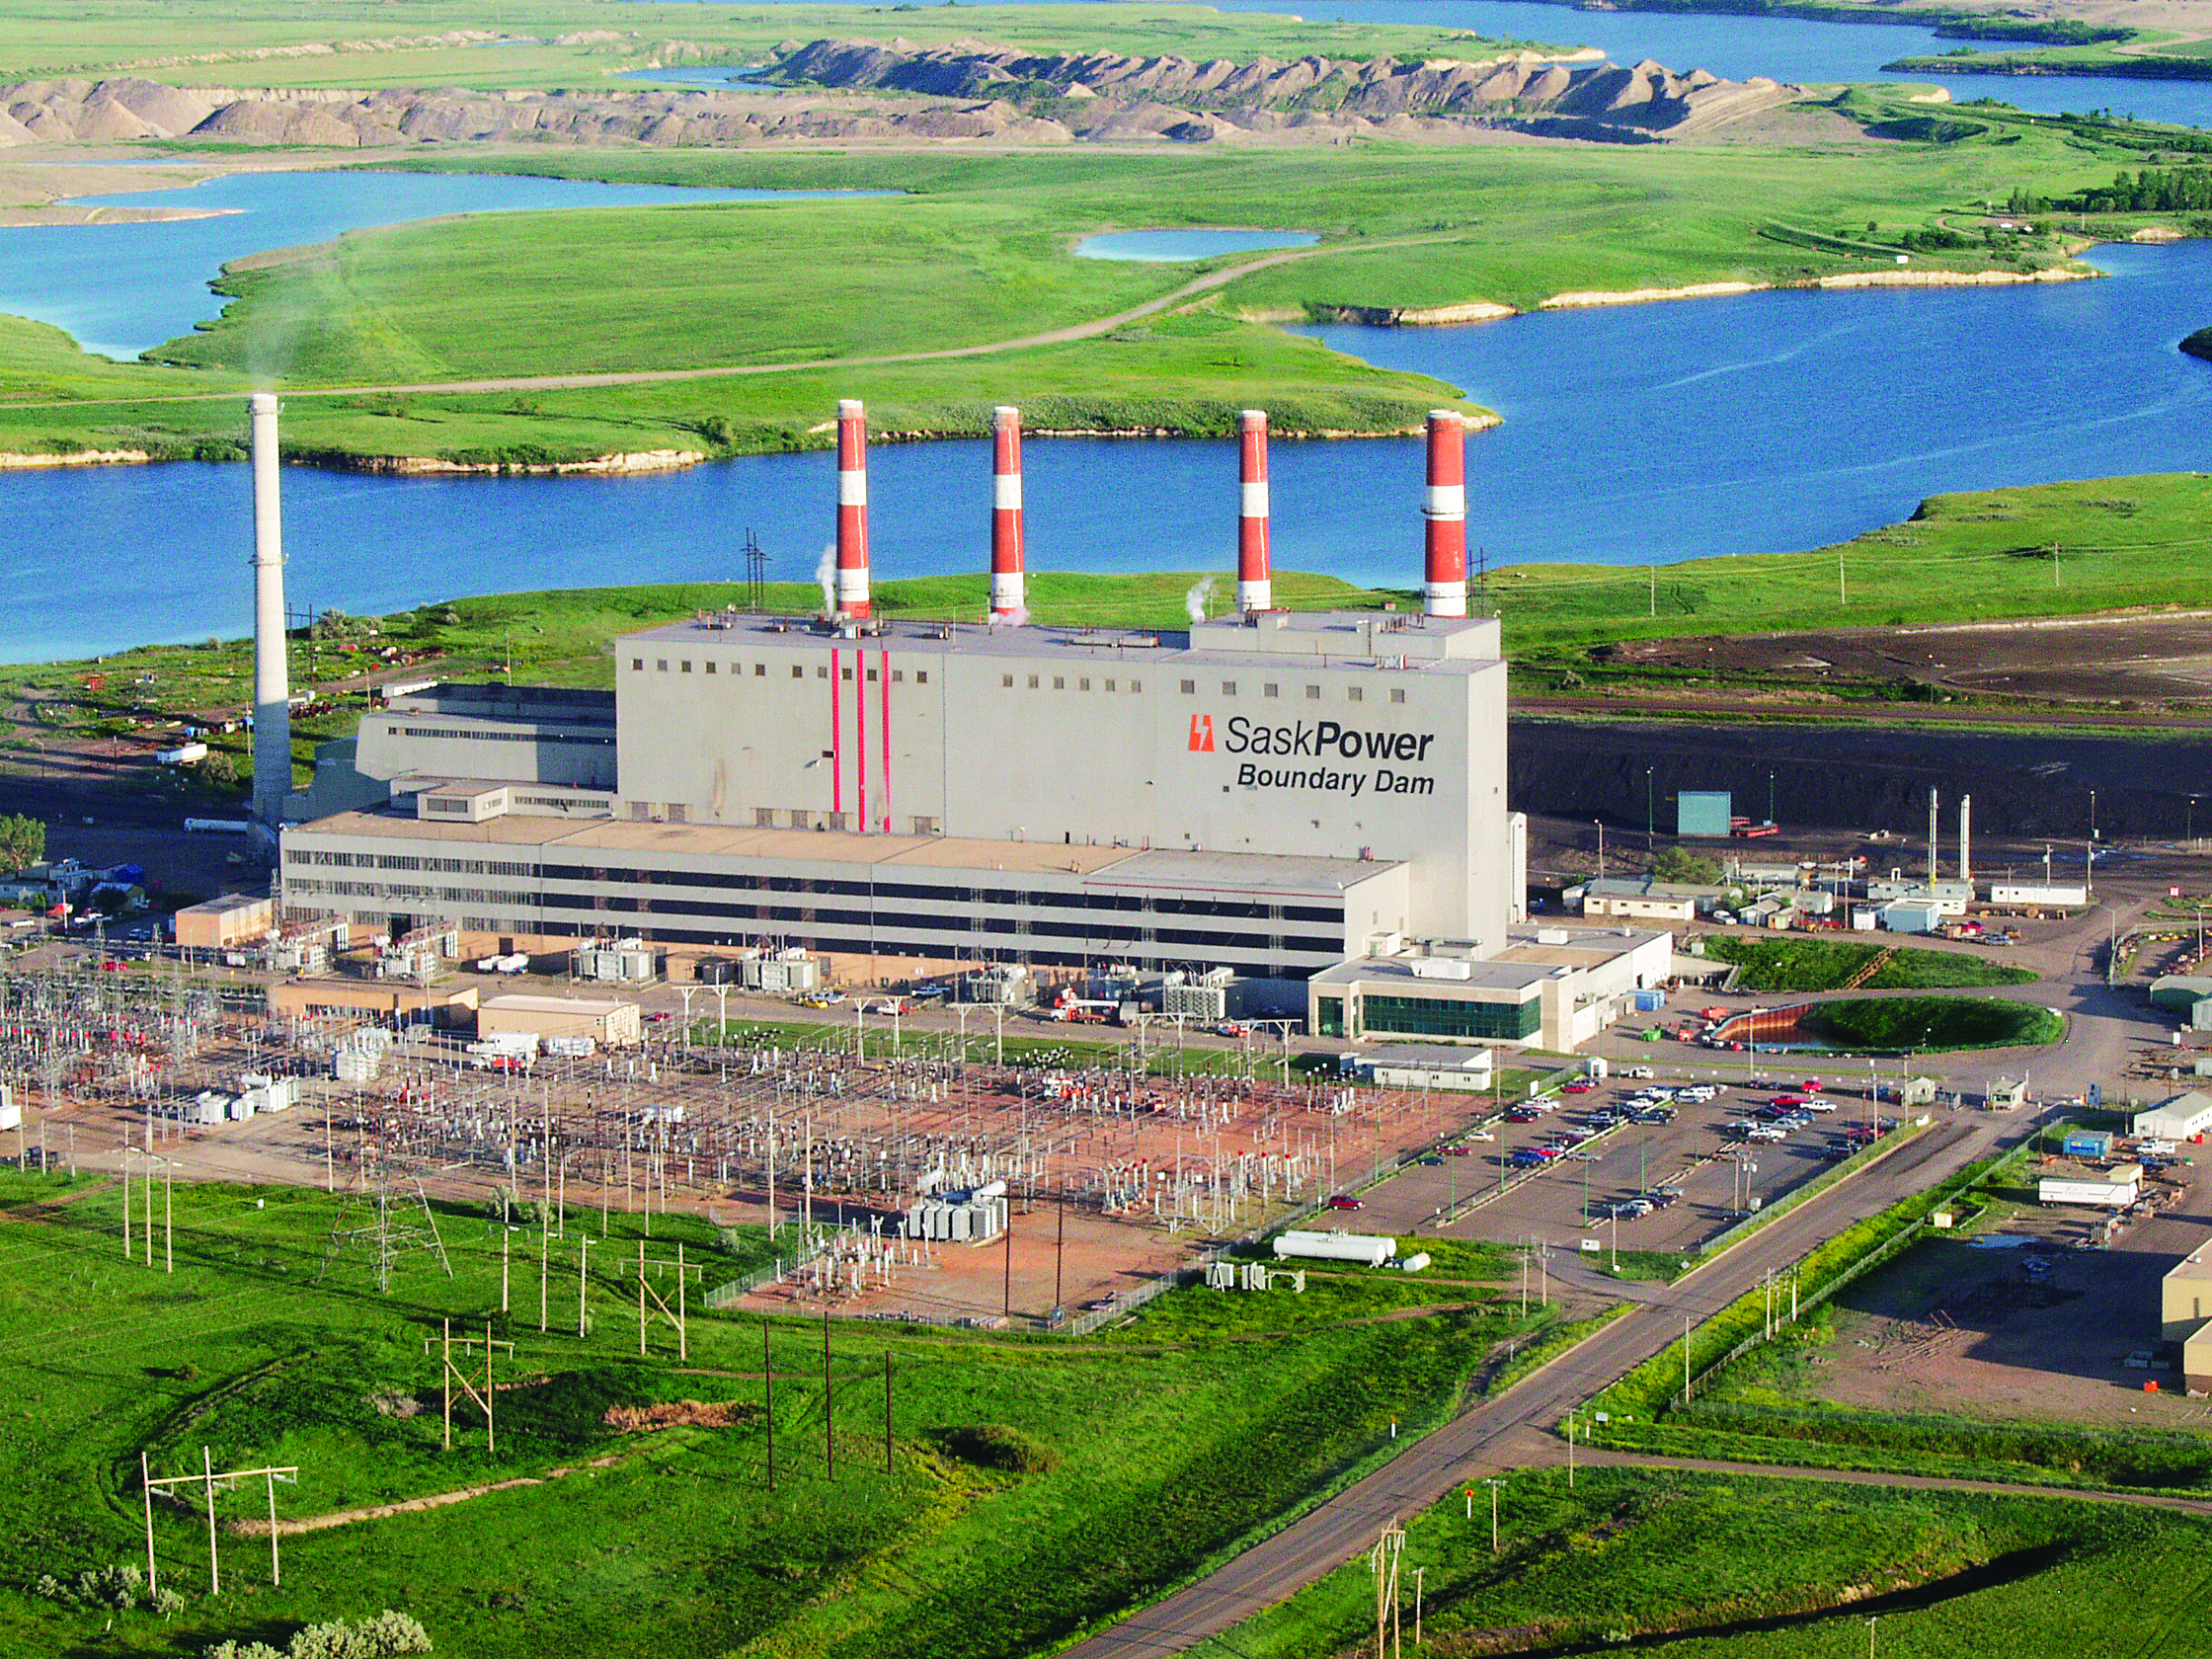 Carbon capture and storage comeback must focus on industry not energy